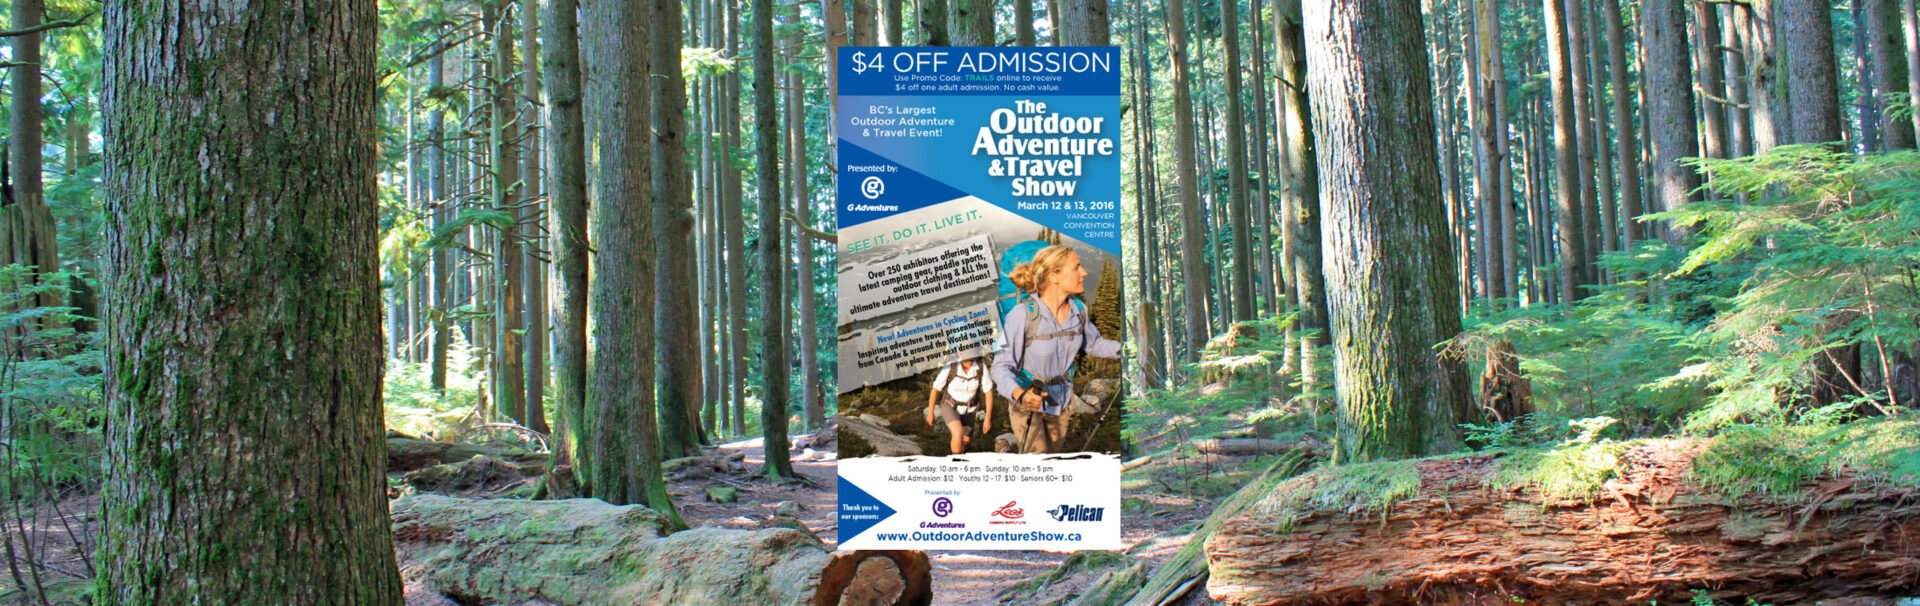 Outdoor Adventure and Travel Show